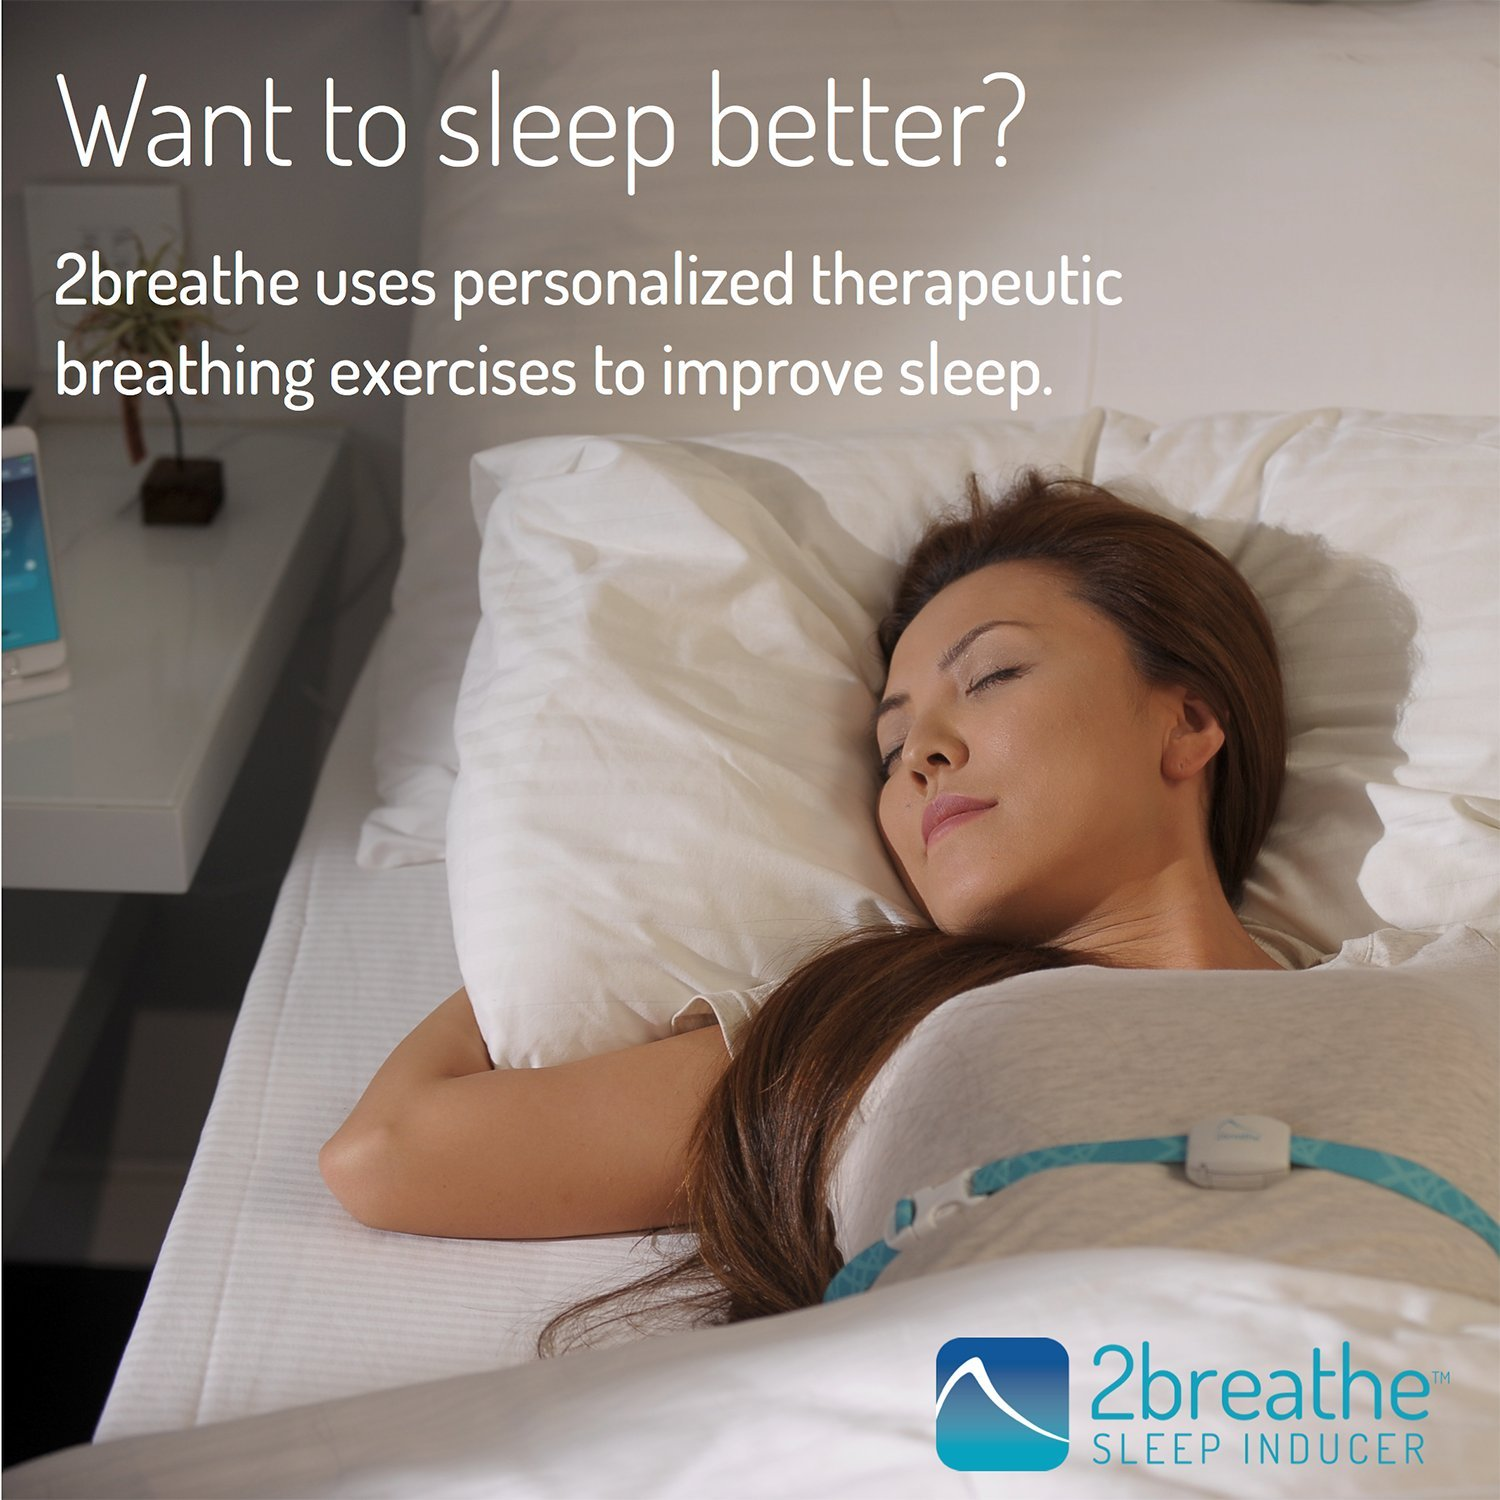 2breathe Sleep Inducer - Sleep Sound System. Smart Device and Mobile App to Induce Sleep. Guides You to Slow Breathing with Prolonged Exhalation using Sounds. Natural Sleep Therapy Machine by RESPeRATE (Image #4)